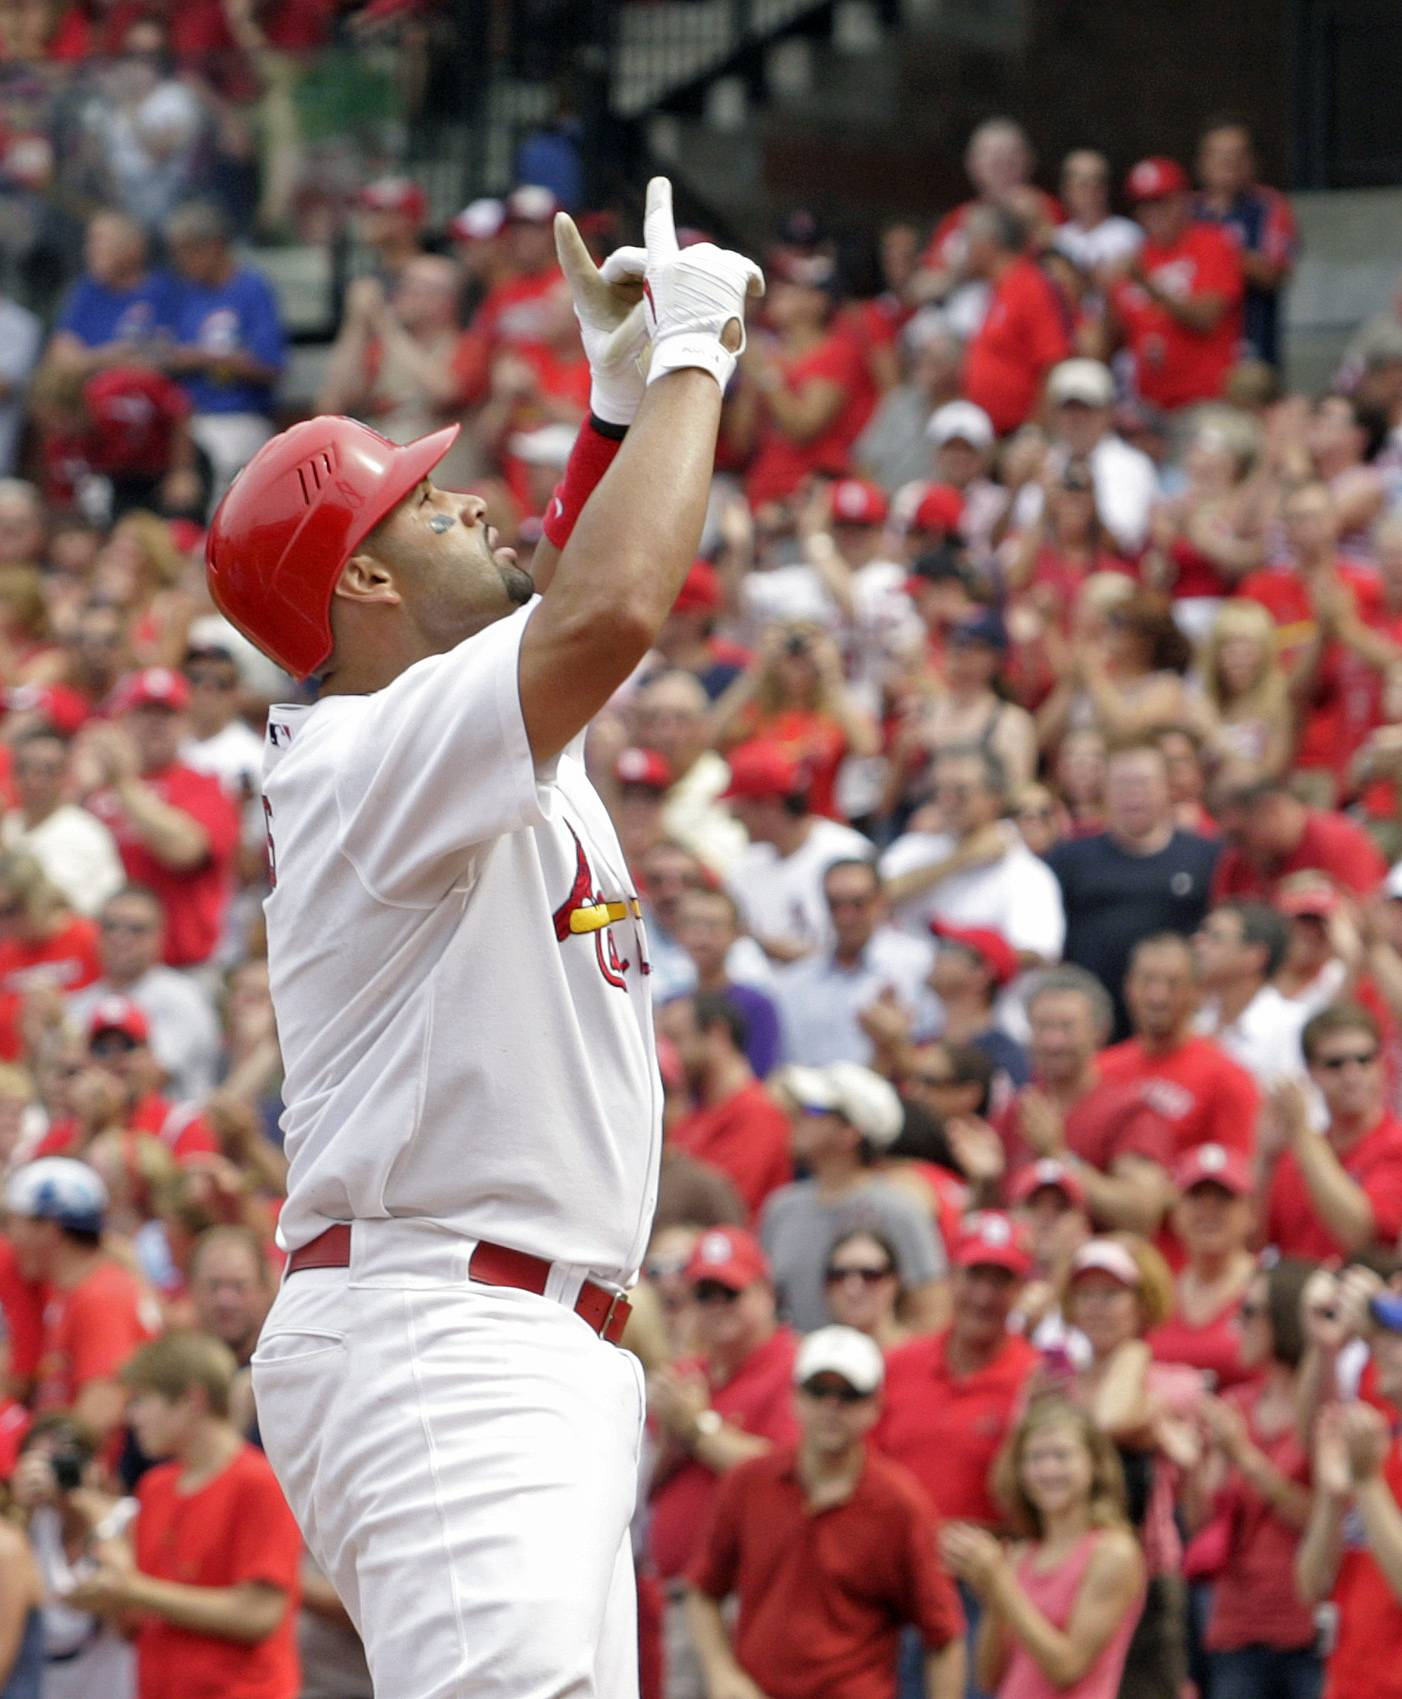 Cardinals first baseman Albert Pujols hit his 432nd career home run in the Cardinals' 13-5 win over the Cubs Saturday.